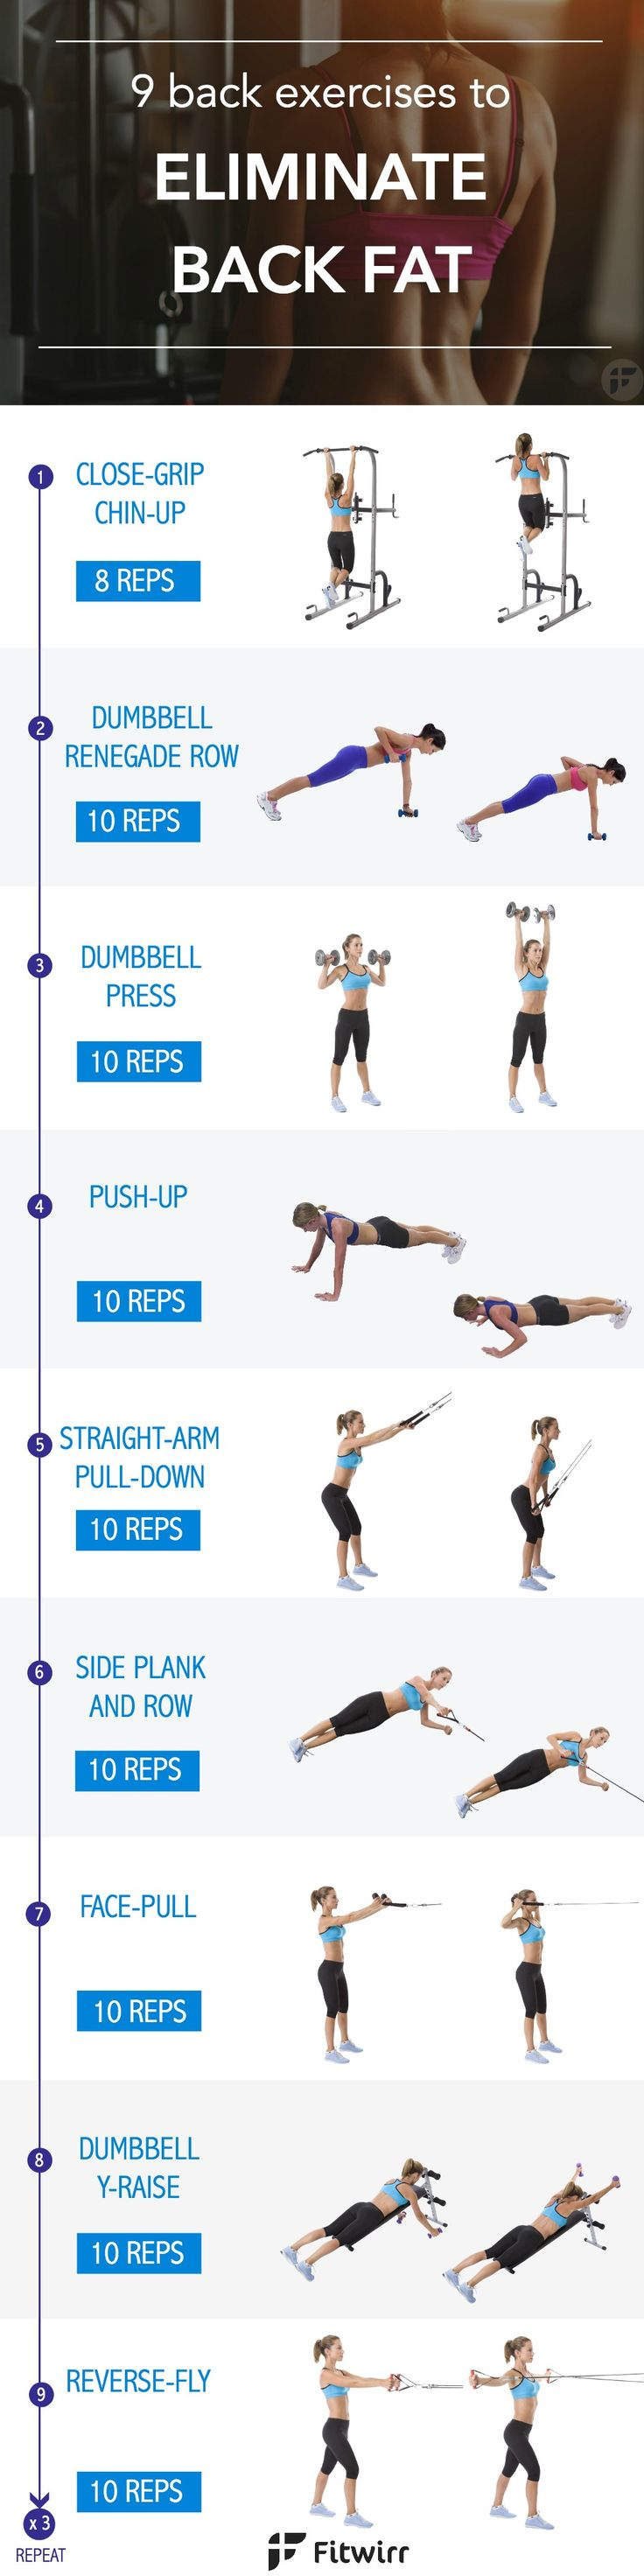 Best exercise to lose back fat fast